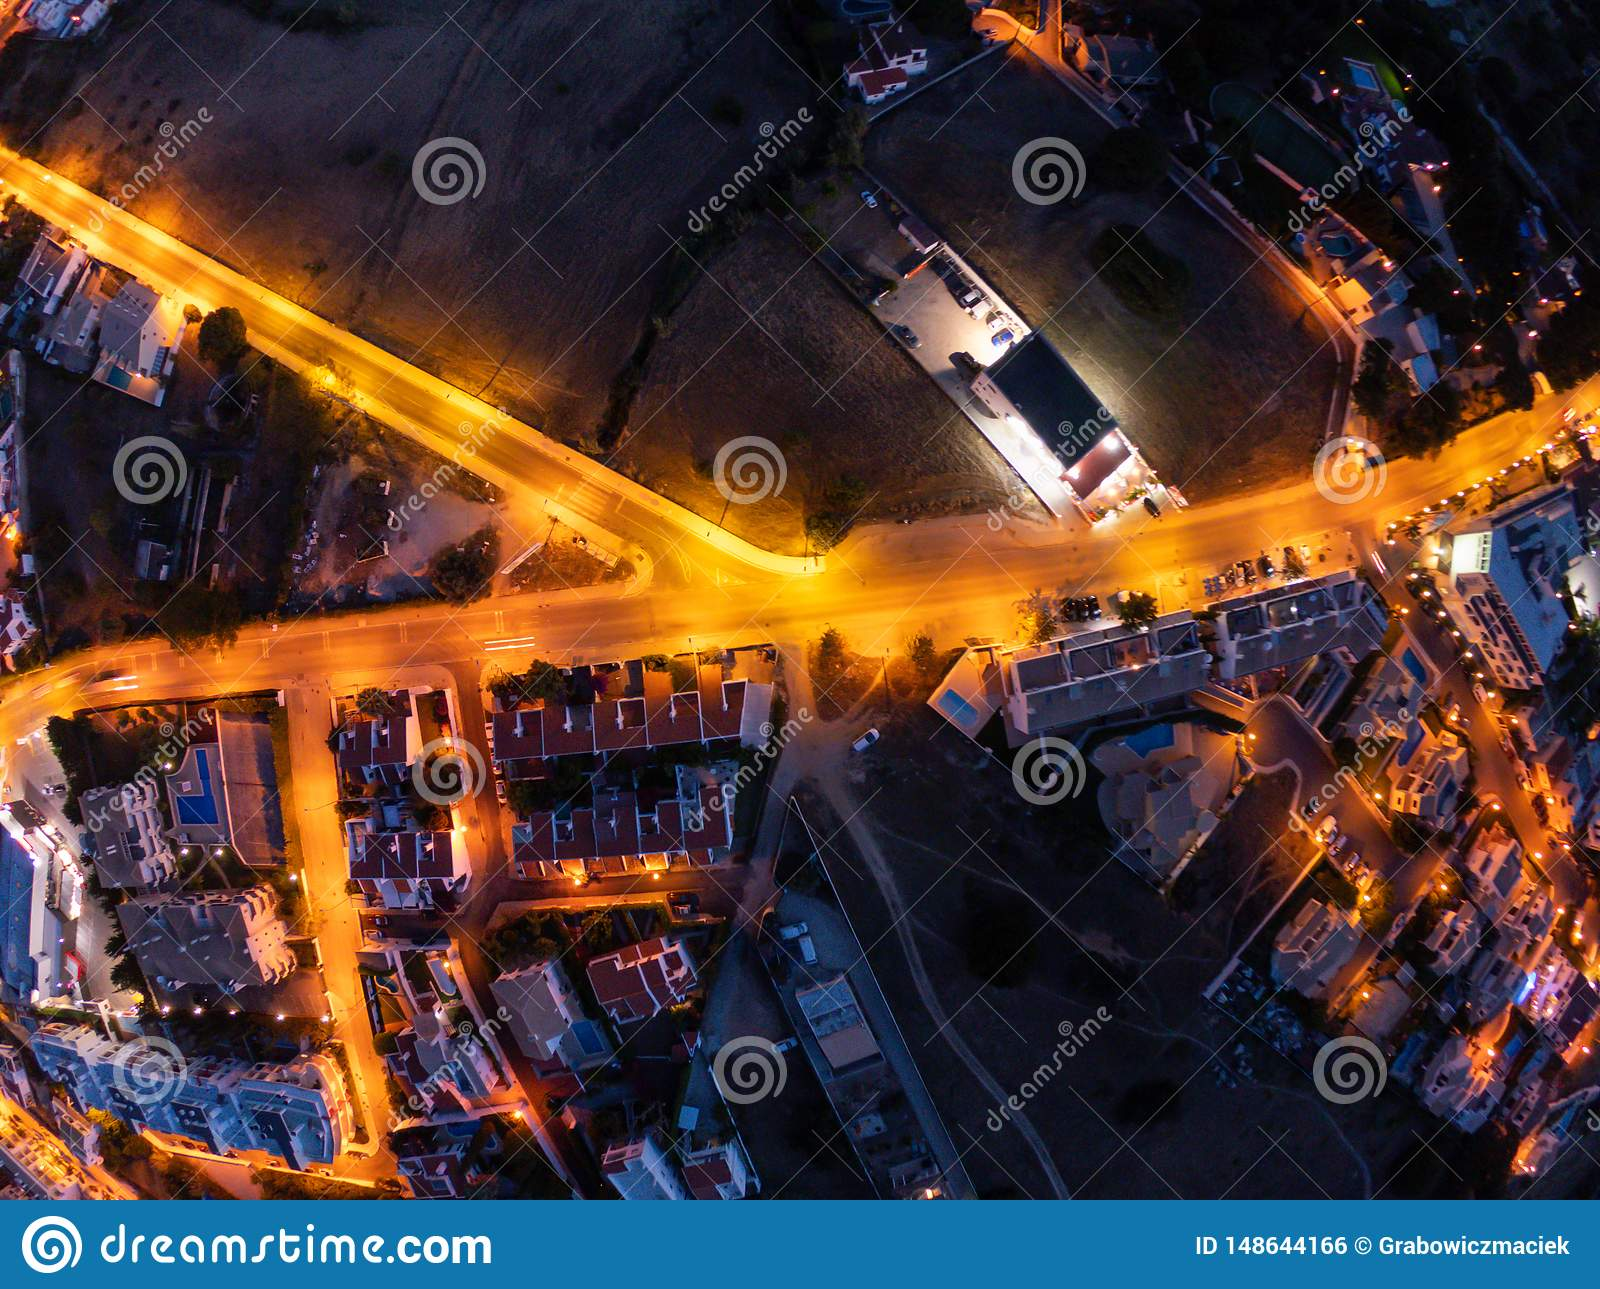 Aerial view on City at night, Albufeira, Portugal. Illuminated streets at sunset